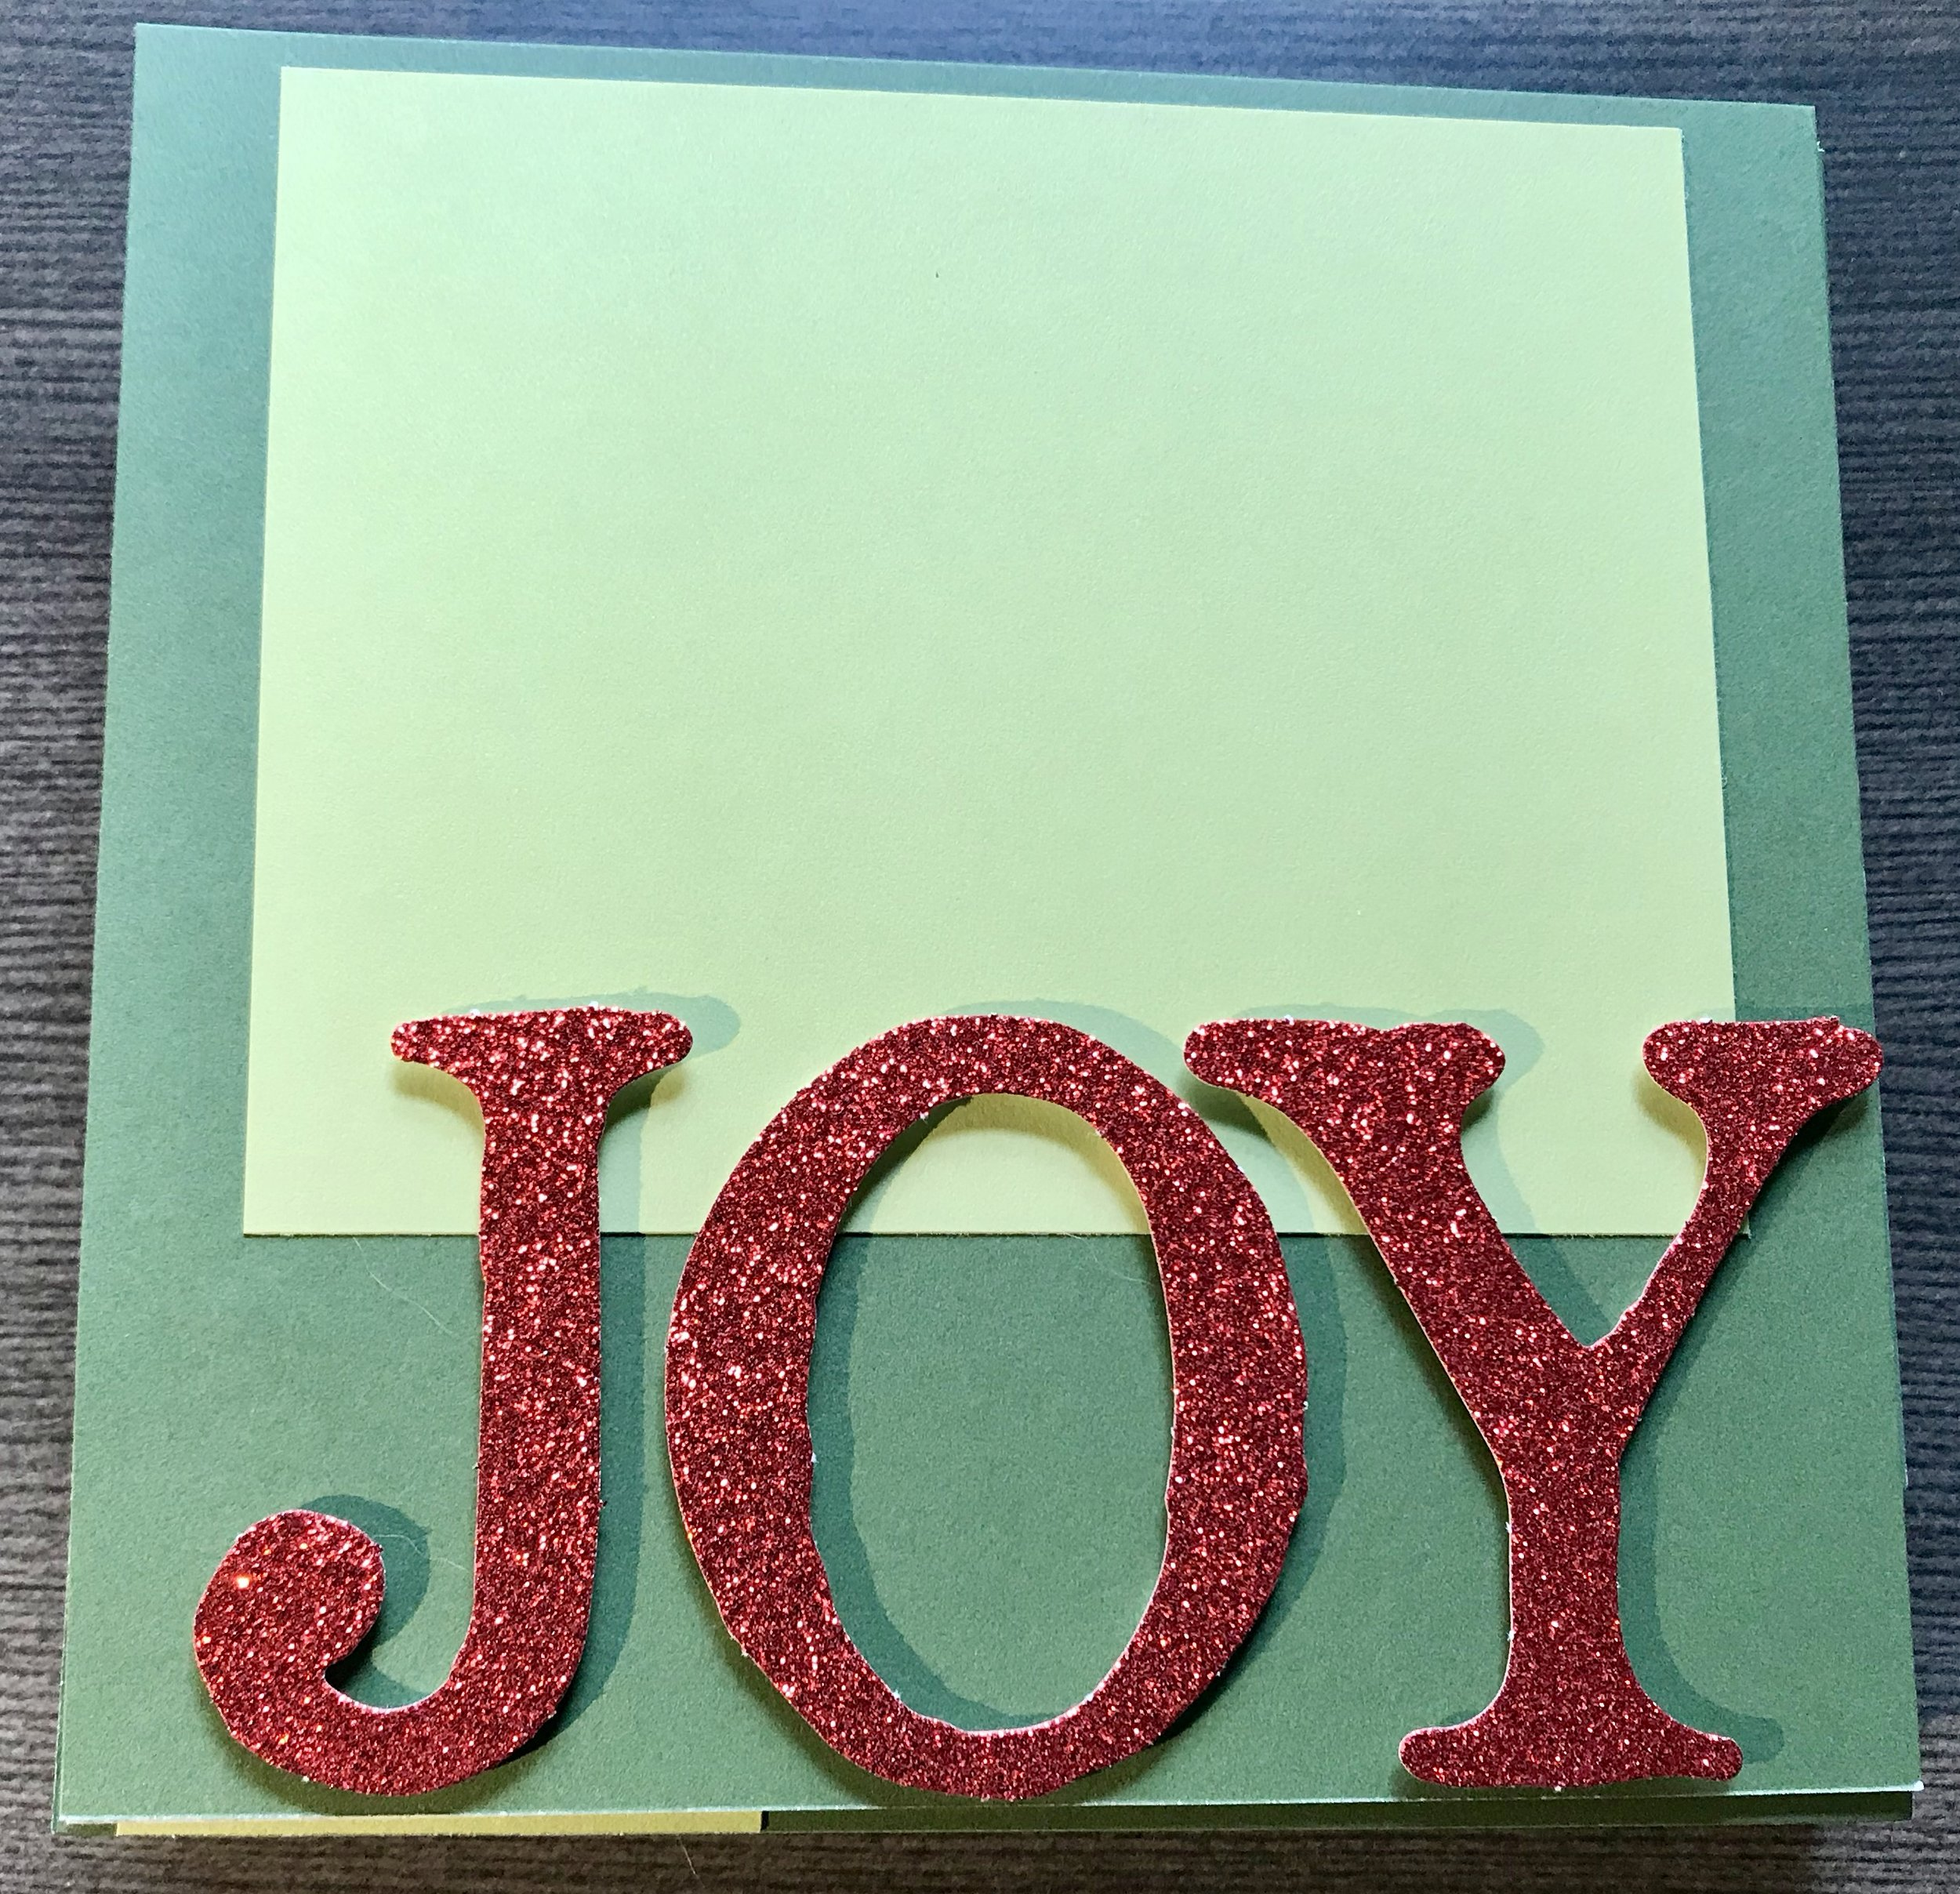 Lighting on this one is off but the last page of the album is highlighted with these gorgeous red glitter letters - also part of the Complements pack.